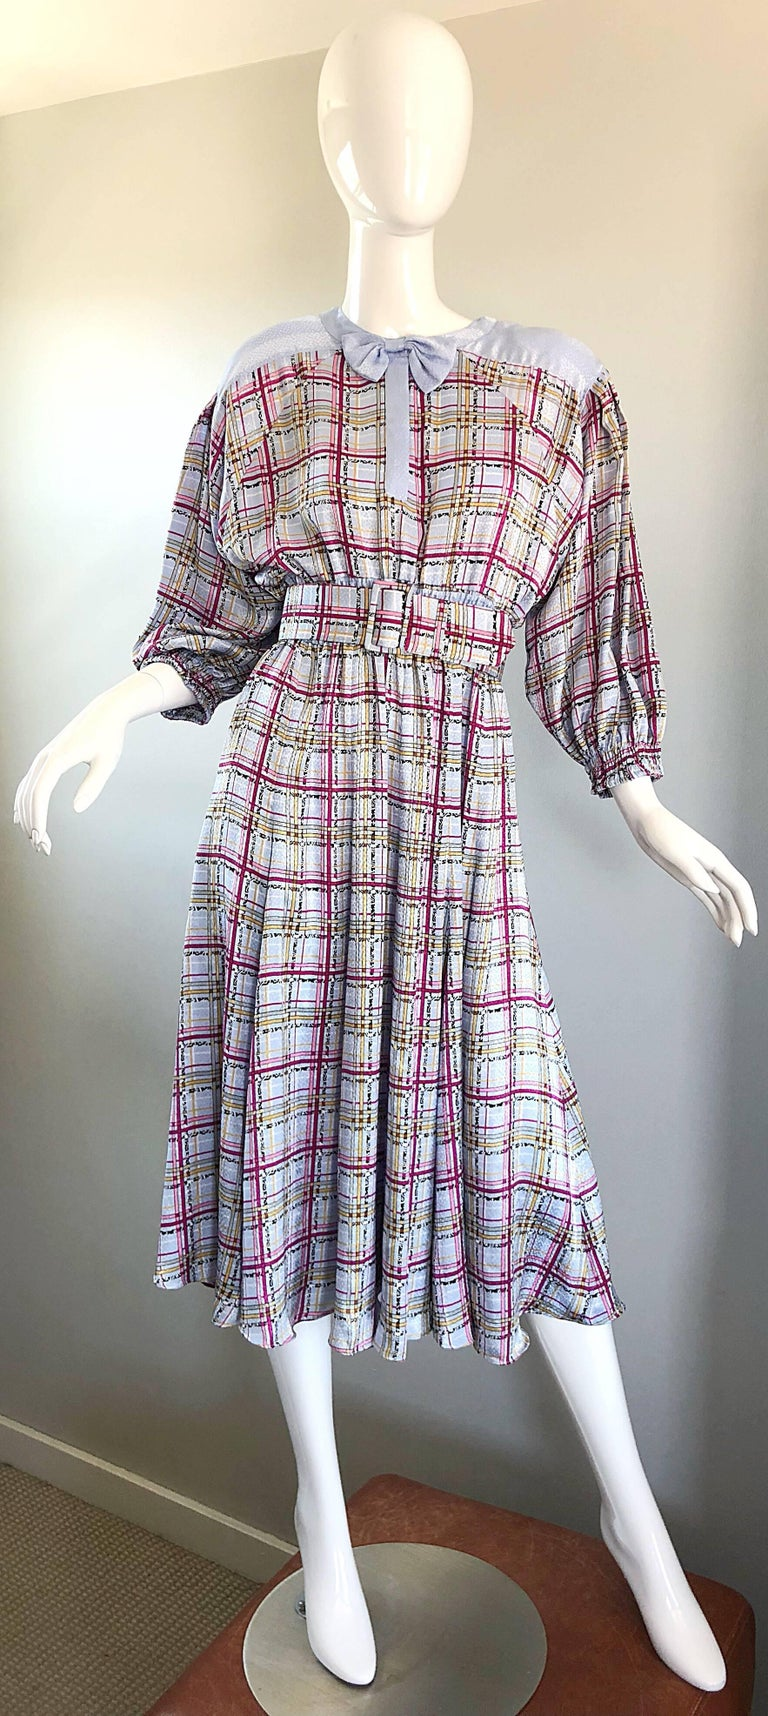 Beautiful 1980s DIANE FREIS belted dress! Classic Freis silhouette is super easy and comfortable to wear, without sacrificing style. Soft pastel shades of purple and pink, with just a bit of yellow. Hidden buttons up the front neck with a chic bow